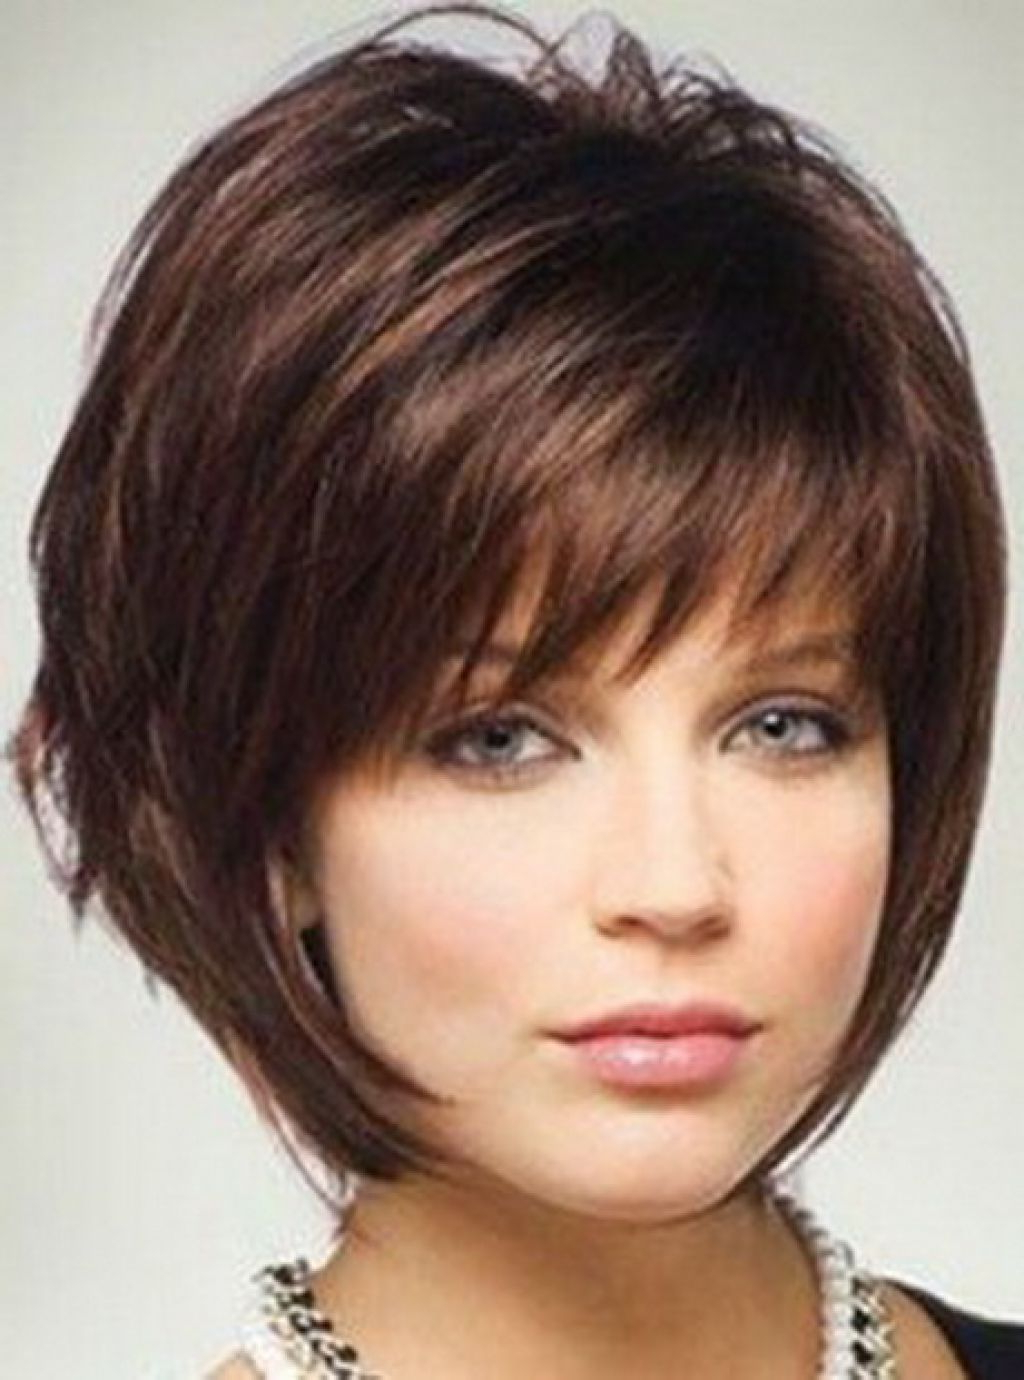 Short Shaggy Hairstyles – Hairstyle For Women & Man With Cute Choppy Shaggy Short Haircuts (View 5 of 25)